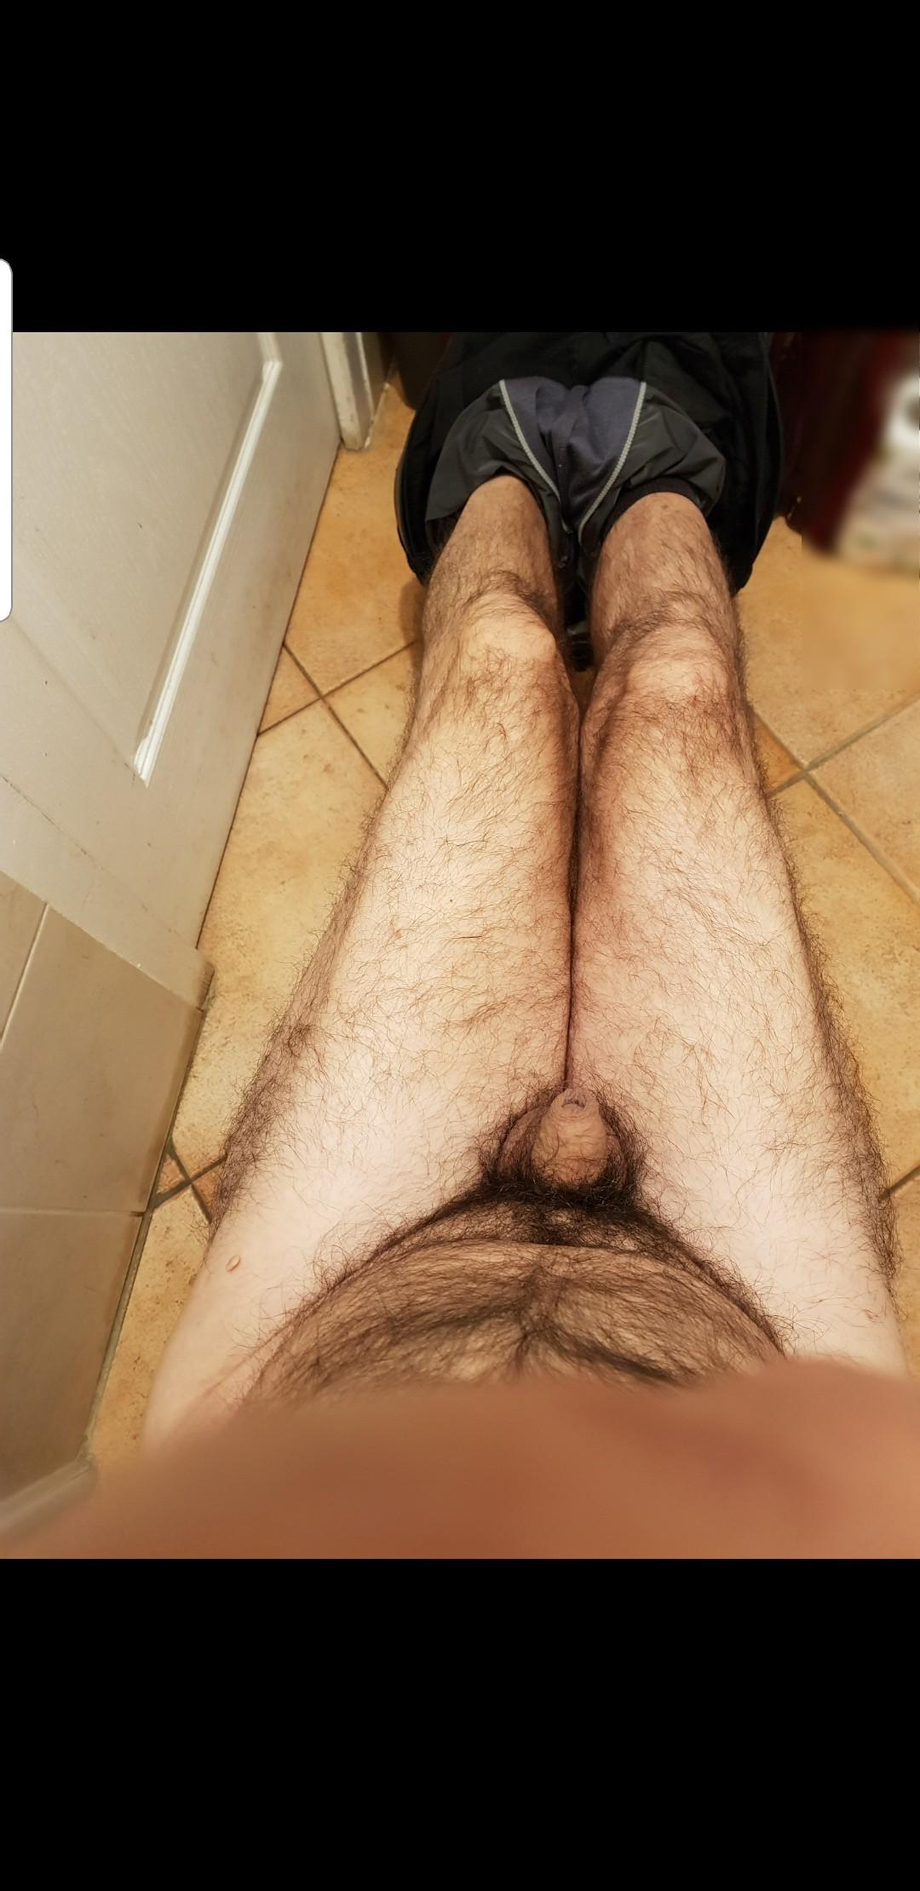 the pants on the ankles ...you will catch me quickly ... I\'m impatient ...[39]   Legs  Porn XXX   Hot XXX Gays